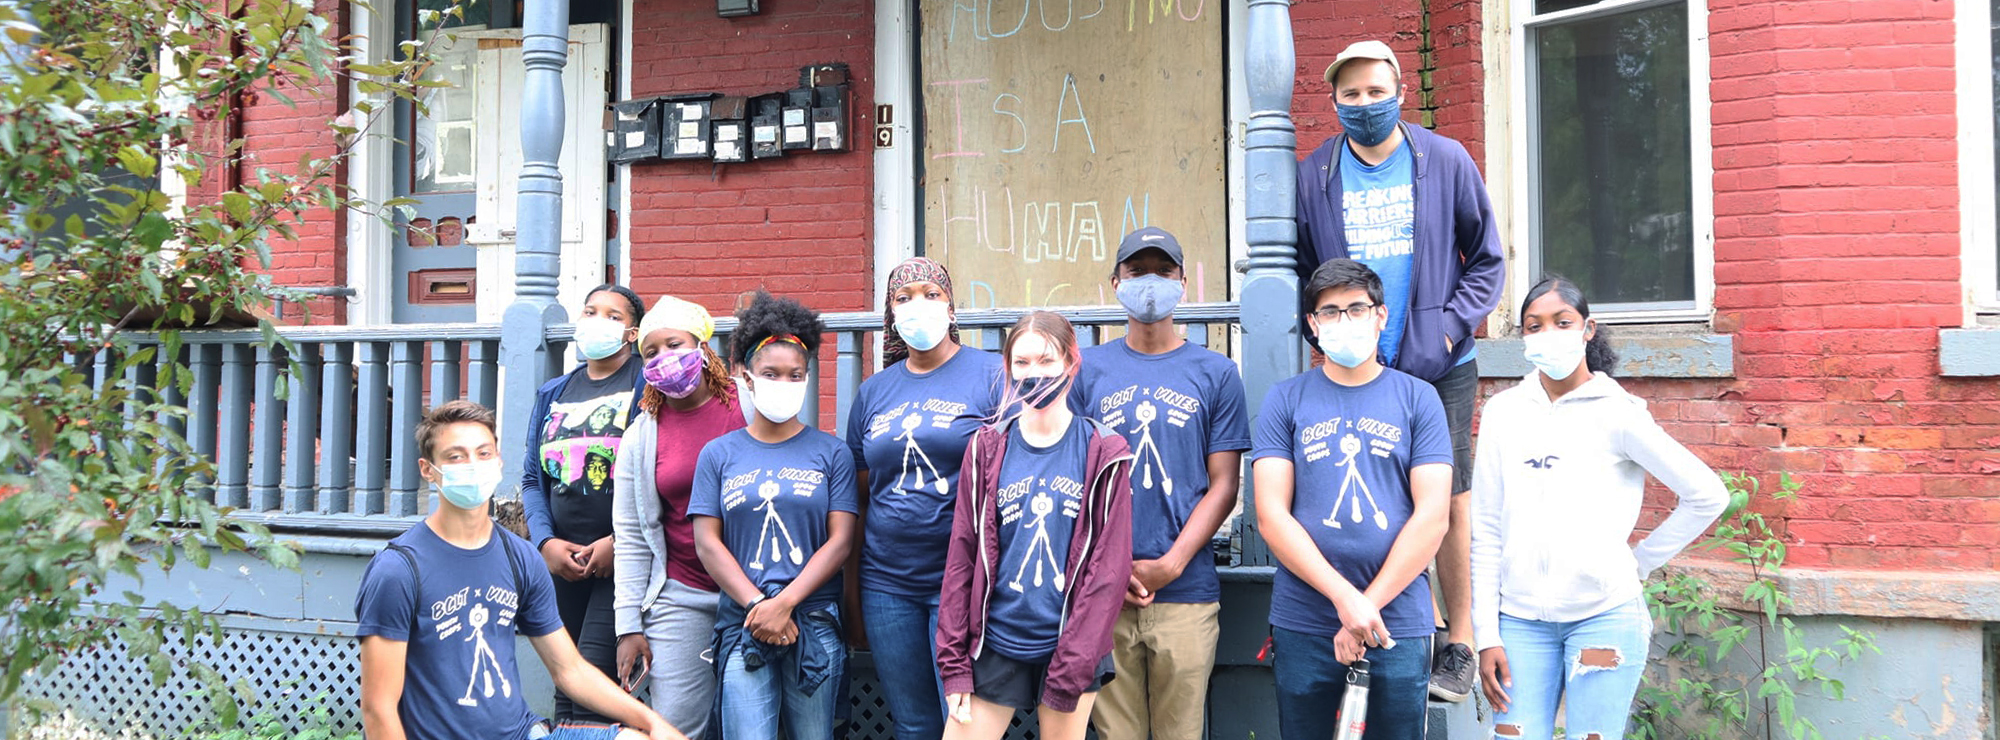 Youth from the Grow Binghamton program shown in front of a dilapidated home.